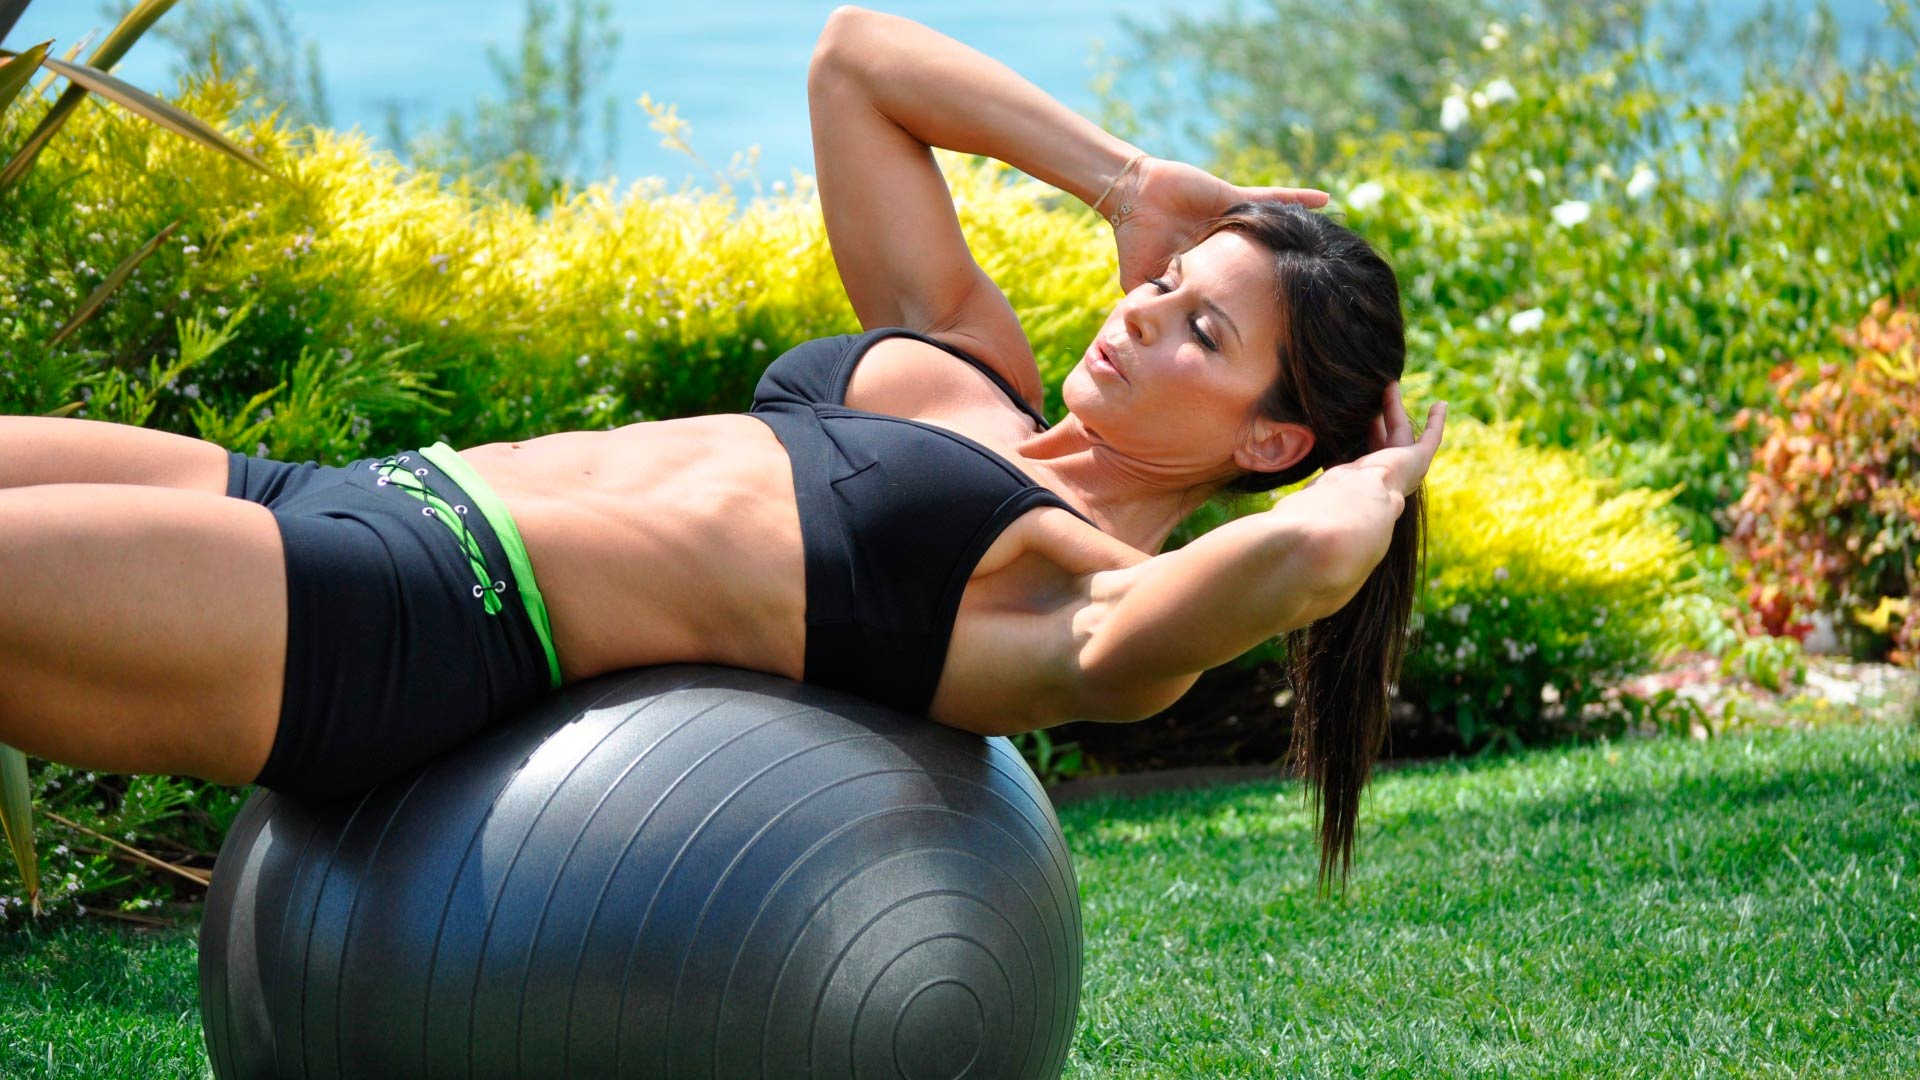 Train lumbar with fitball, safely and effectively